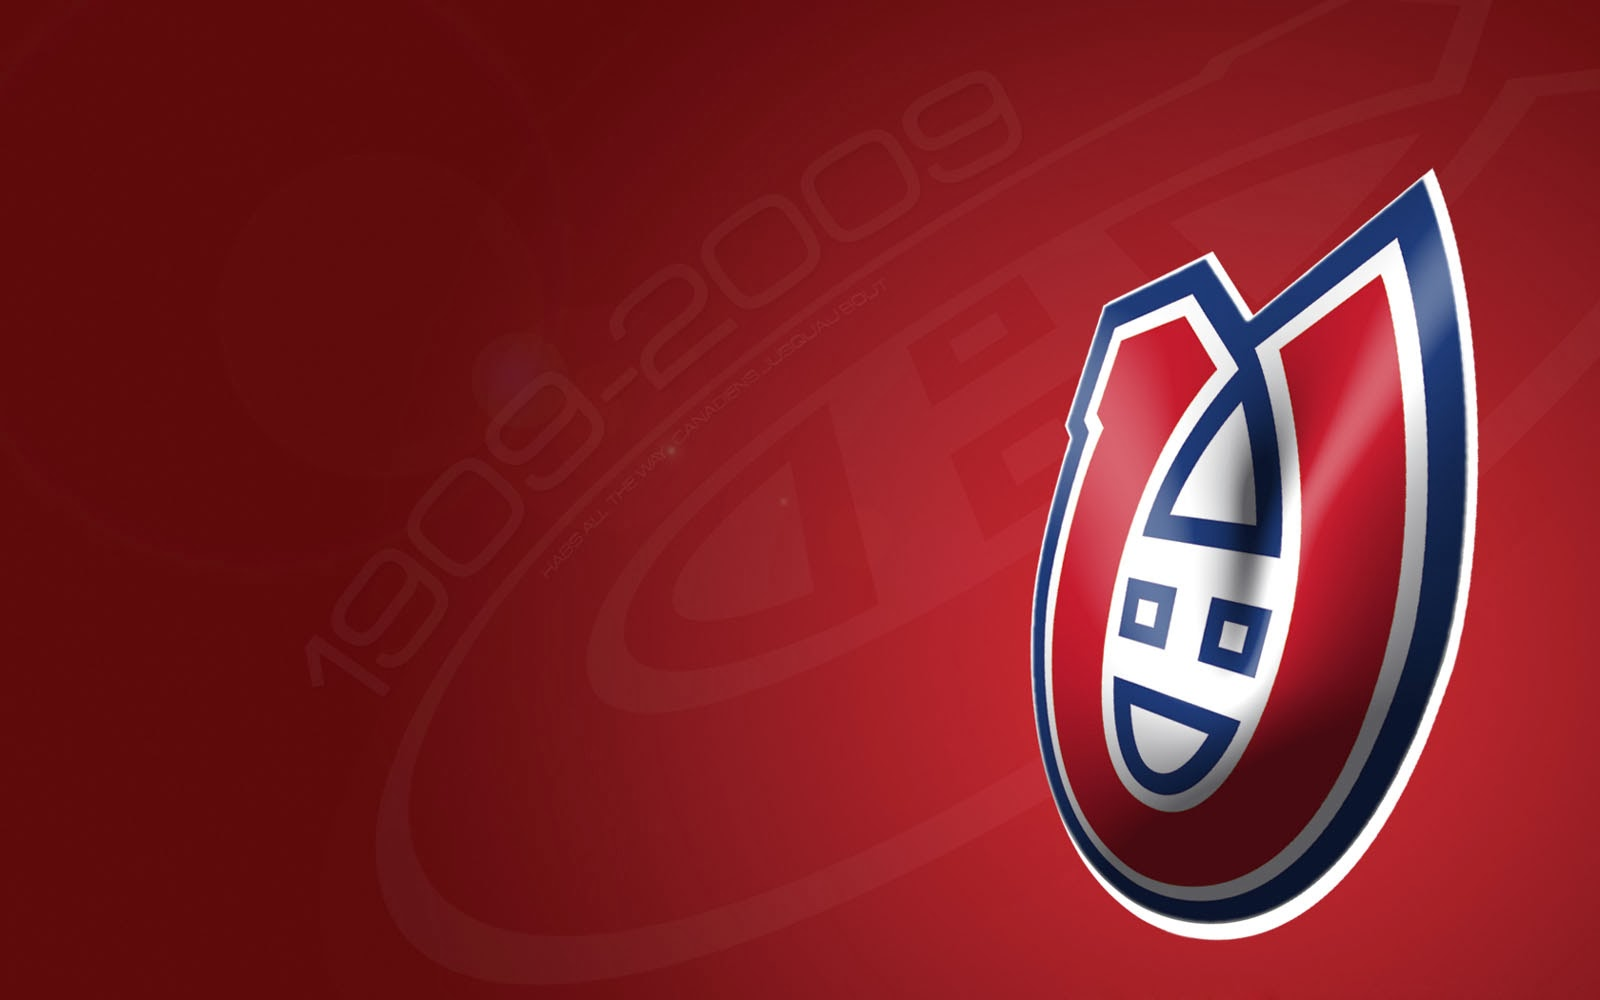 wallpapers Montreal Canadiens Wallpapers 1600x1000